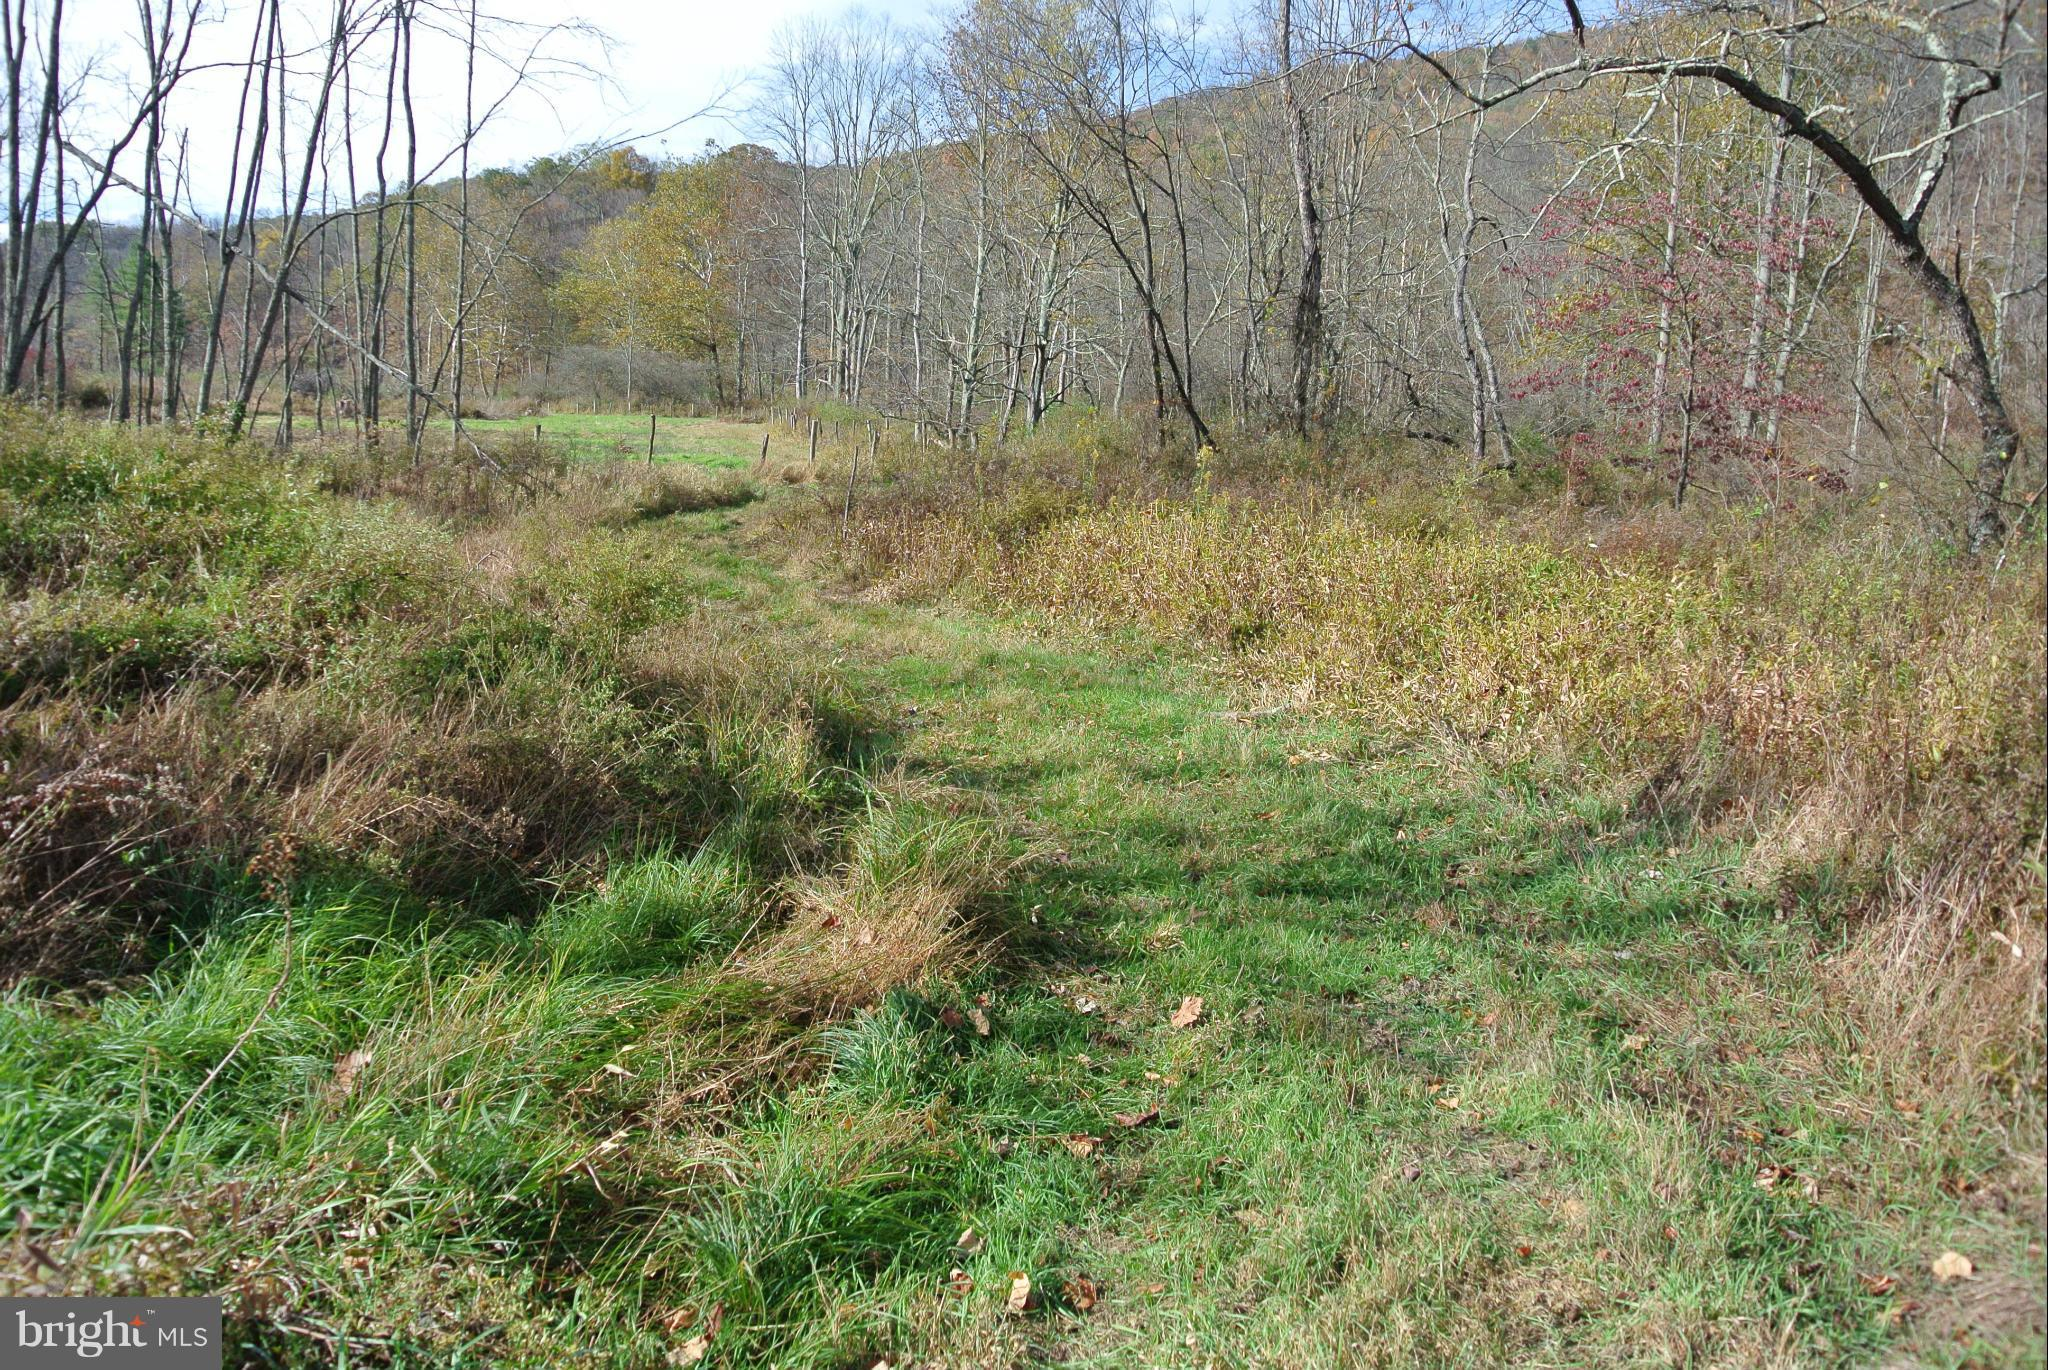 FLINTSTONE CREEK ROAD, BEDFORD, PA 15522